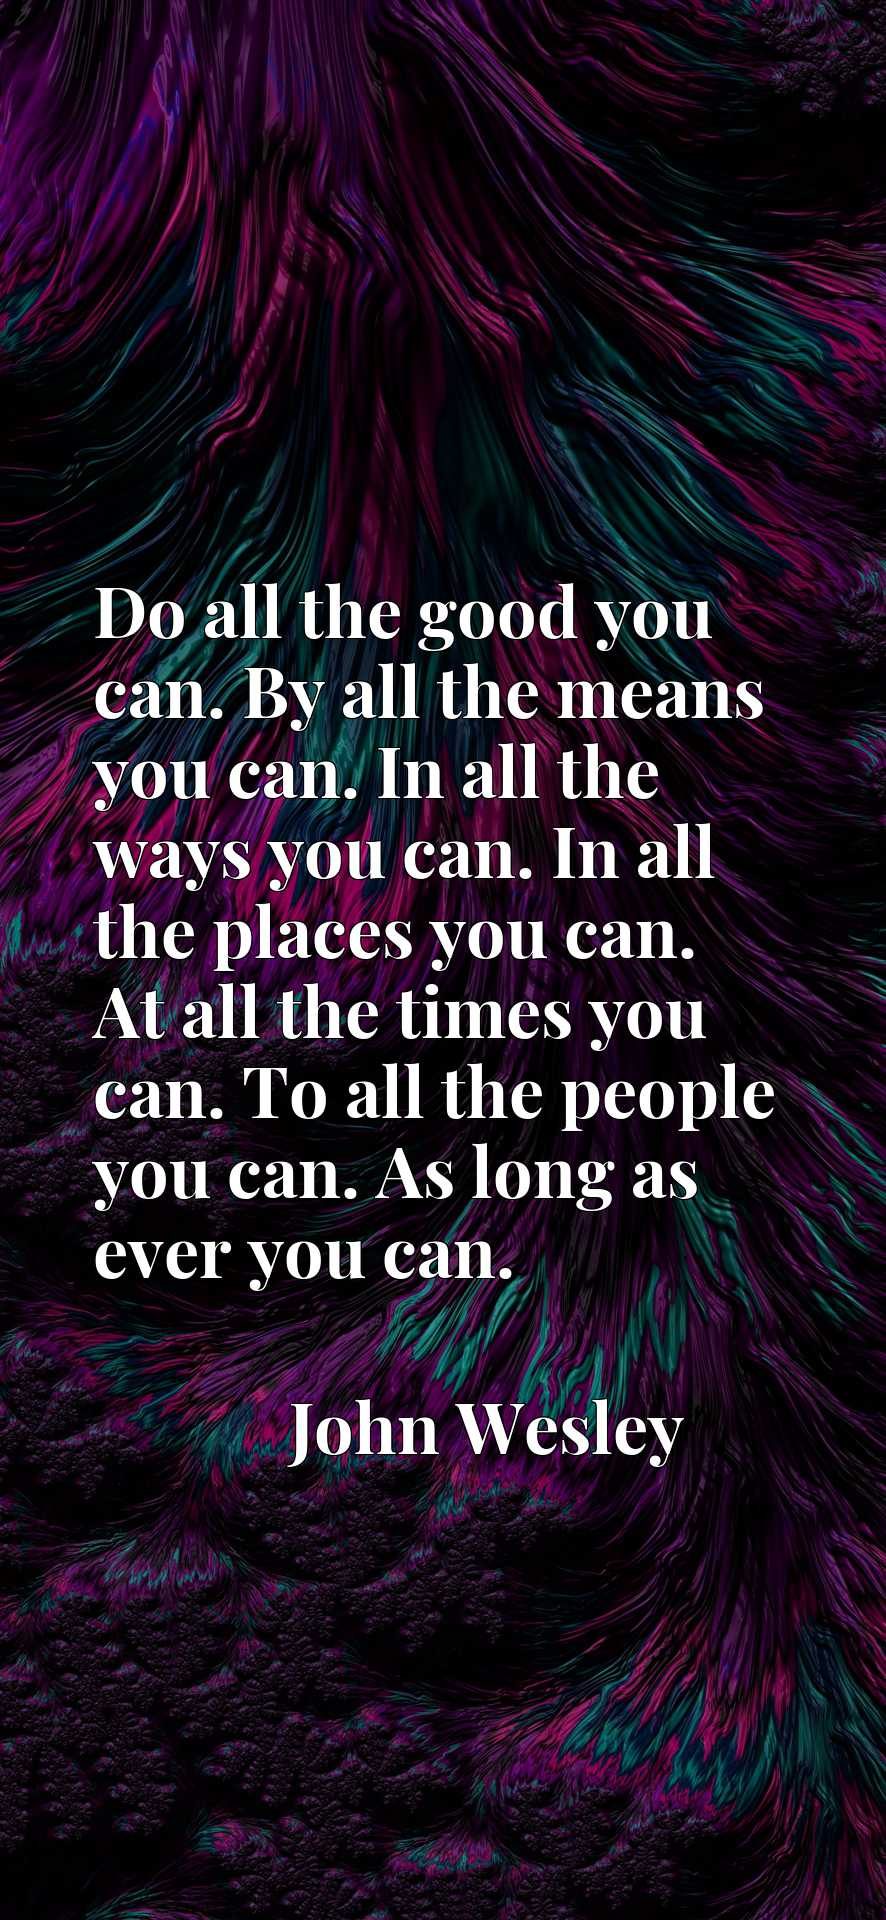 Do all the good you can. By all the means you can. In all the ways you can. In all the places you can. At all the times you can. To all the people you can. As long as ever you can.